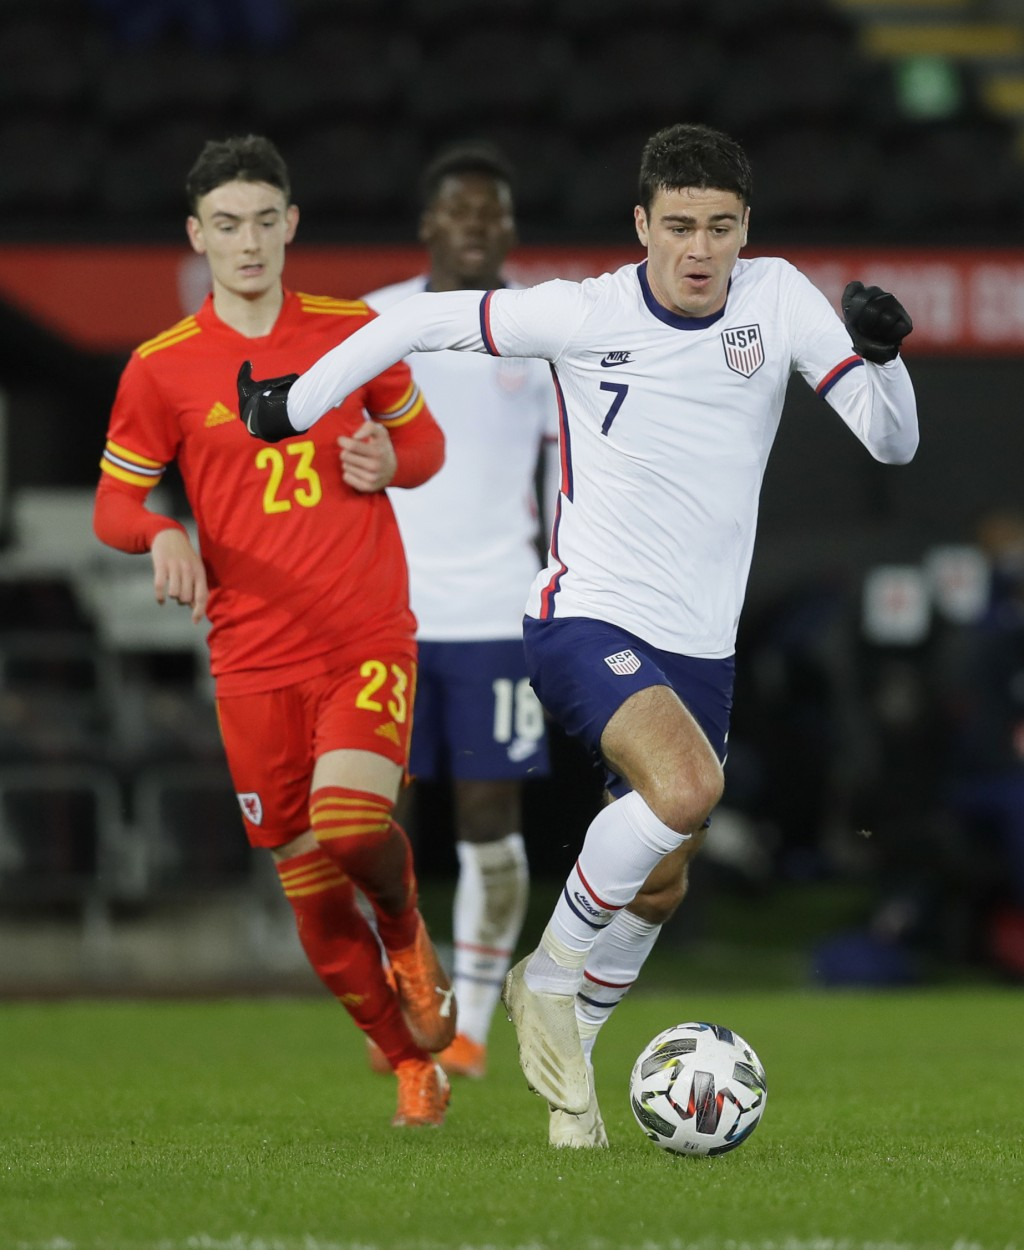 United States' Gio Reyna, right, vies for the ball with Wales' Dylan Levitt during the international friendly soccer match between Wales and USA at Li...